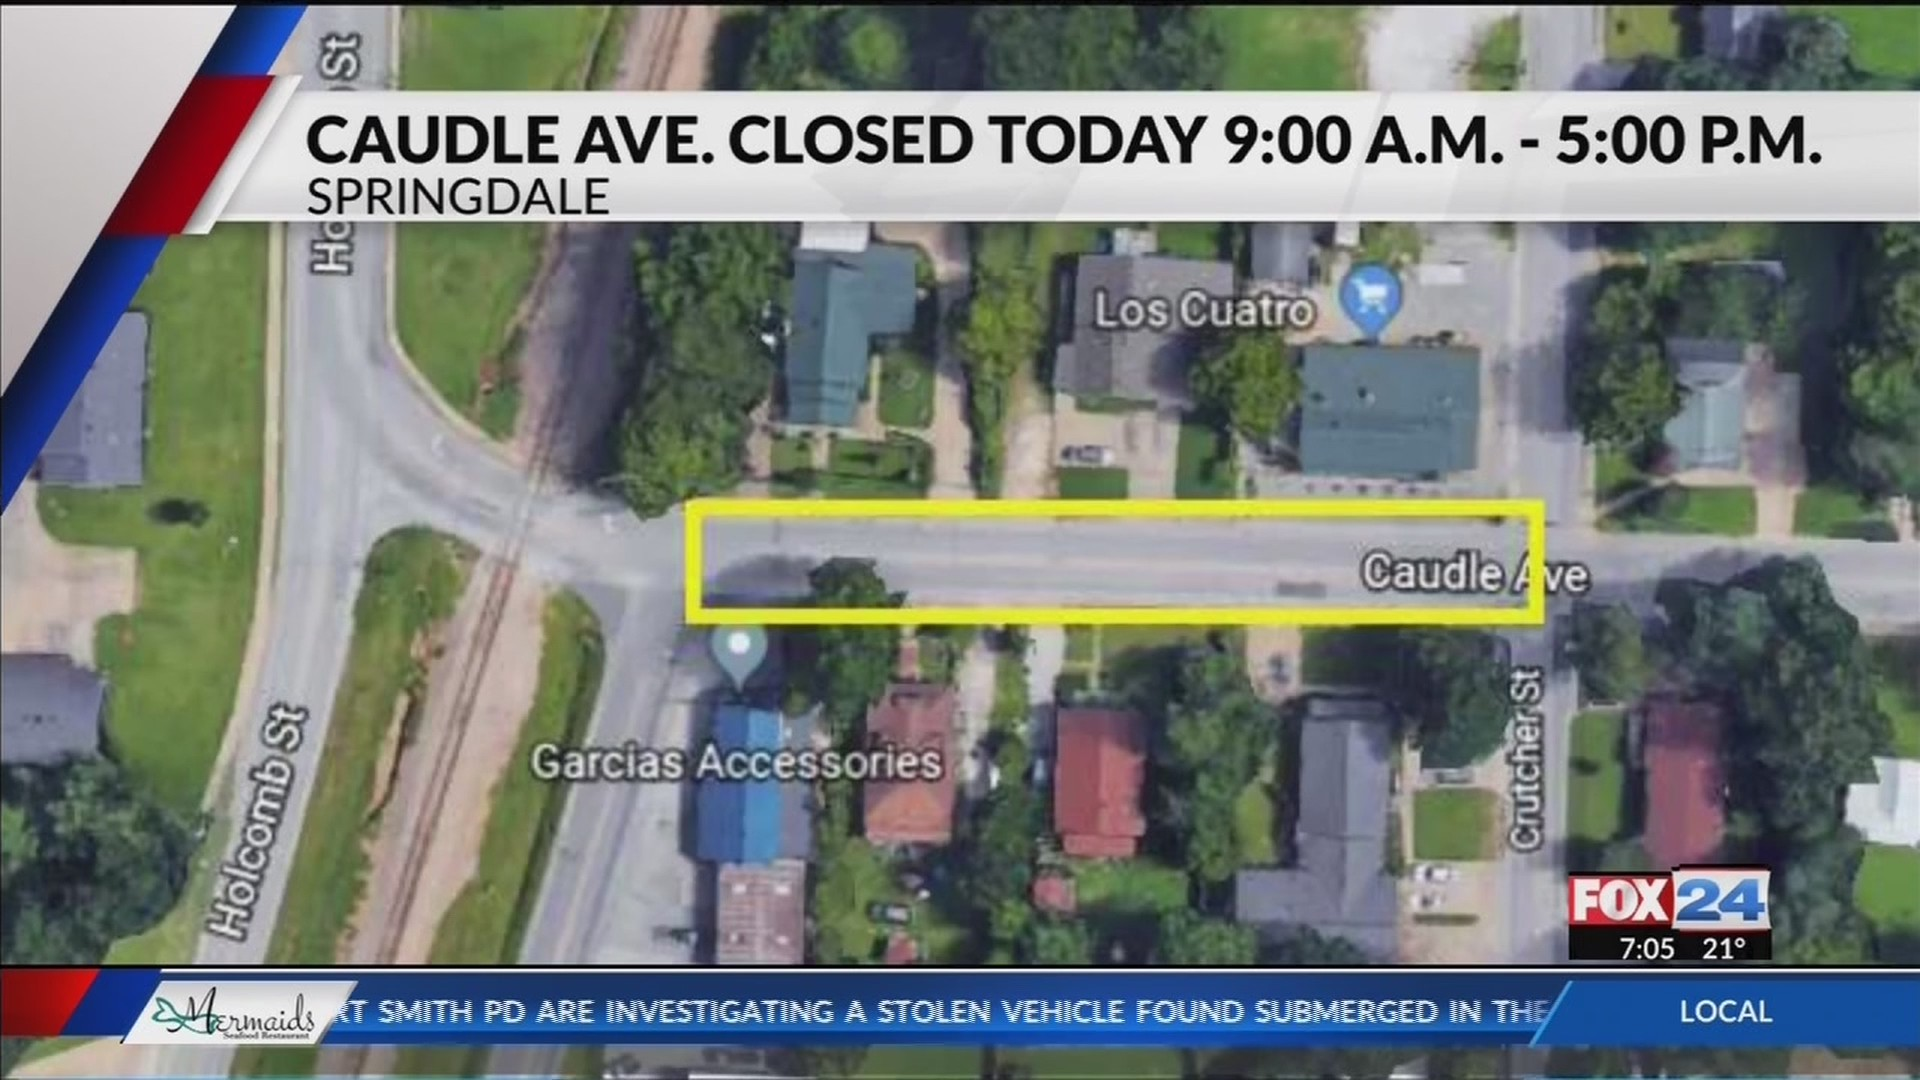 Caudle_Avenue_in_Springdale_Closed_Today_0_20181120132319